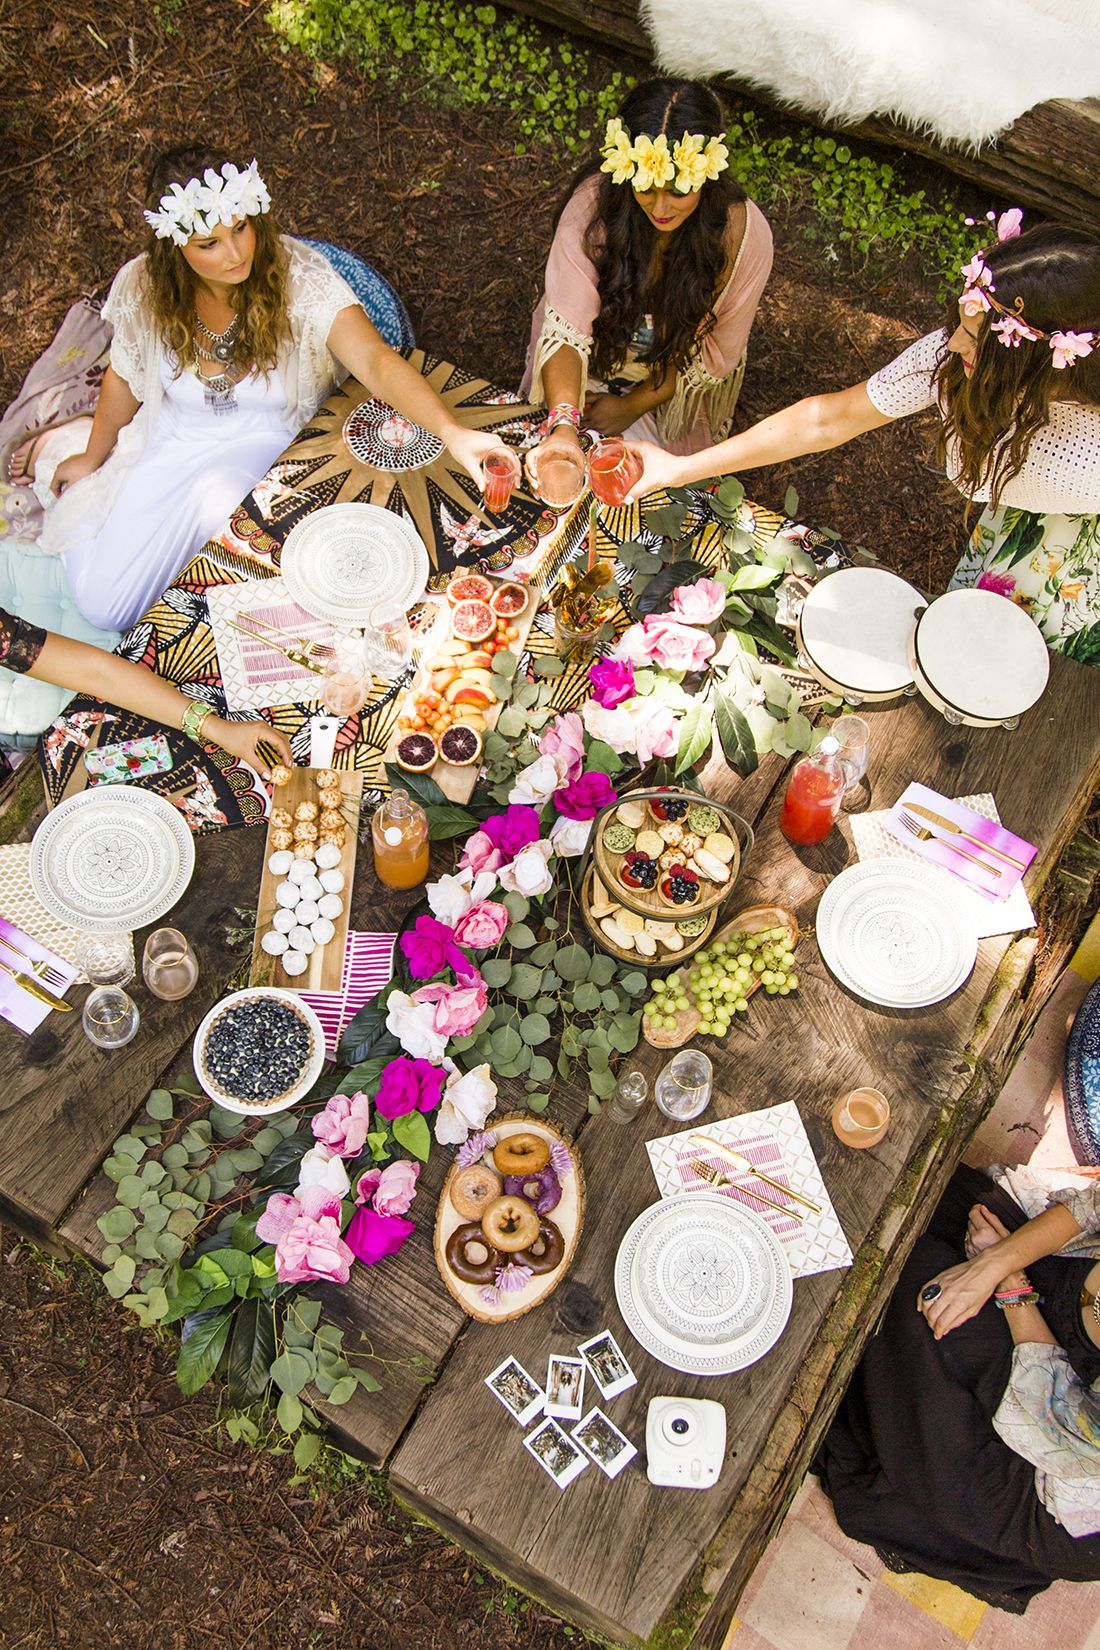 8ede9999ab1d DIY floral crowns and floral garlands are a must-make for your ultimate  picture-perfect boho bridal shower.  partner